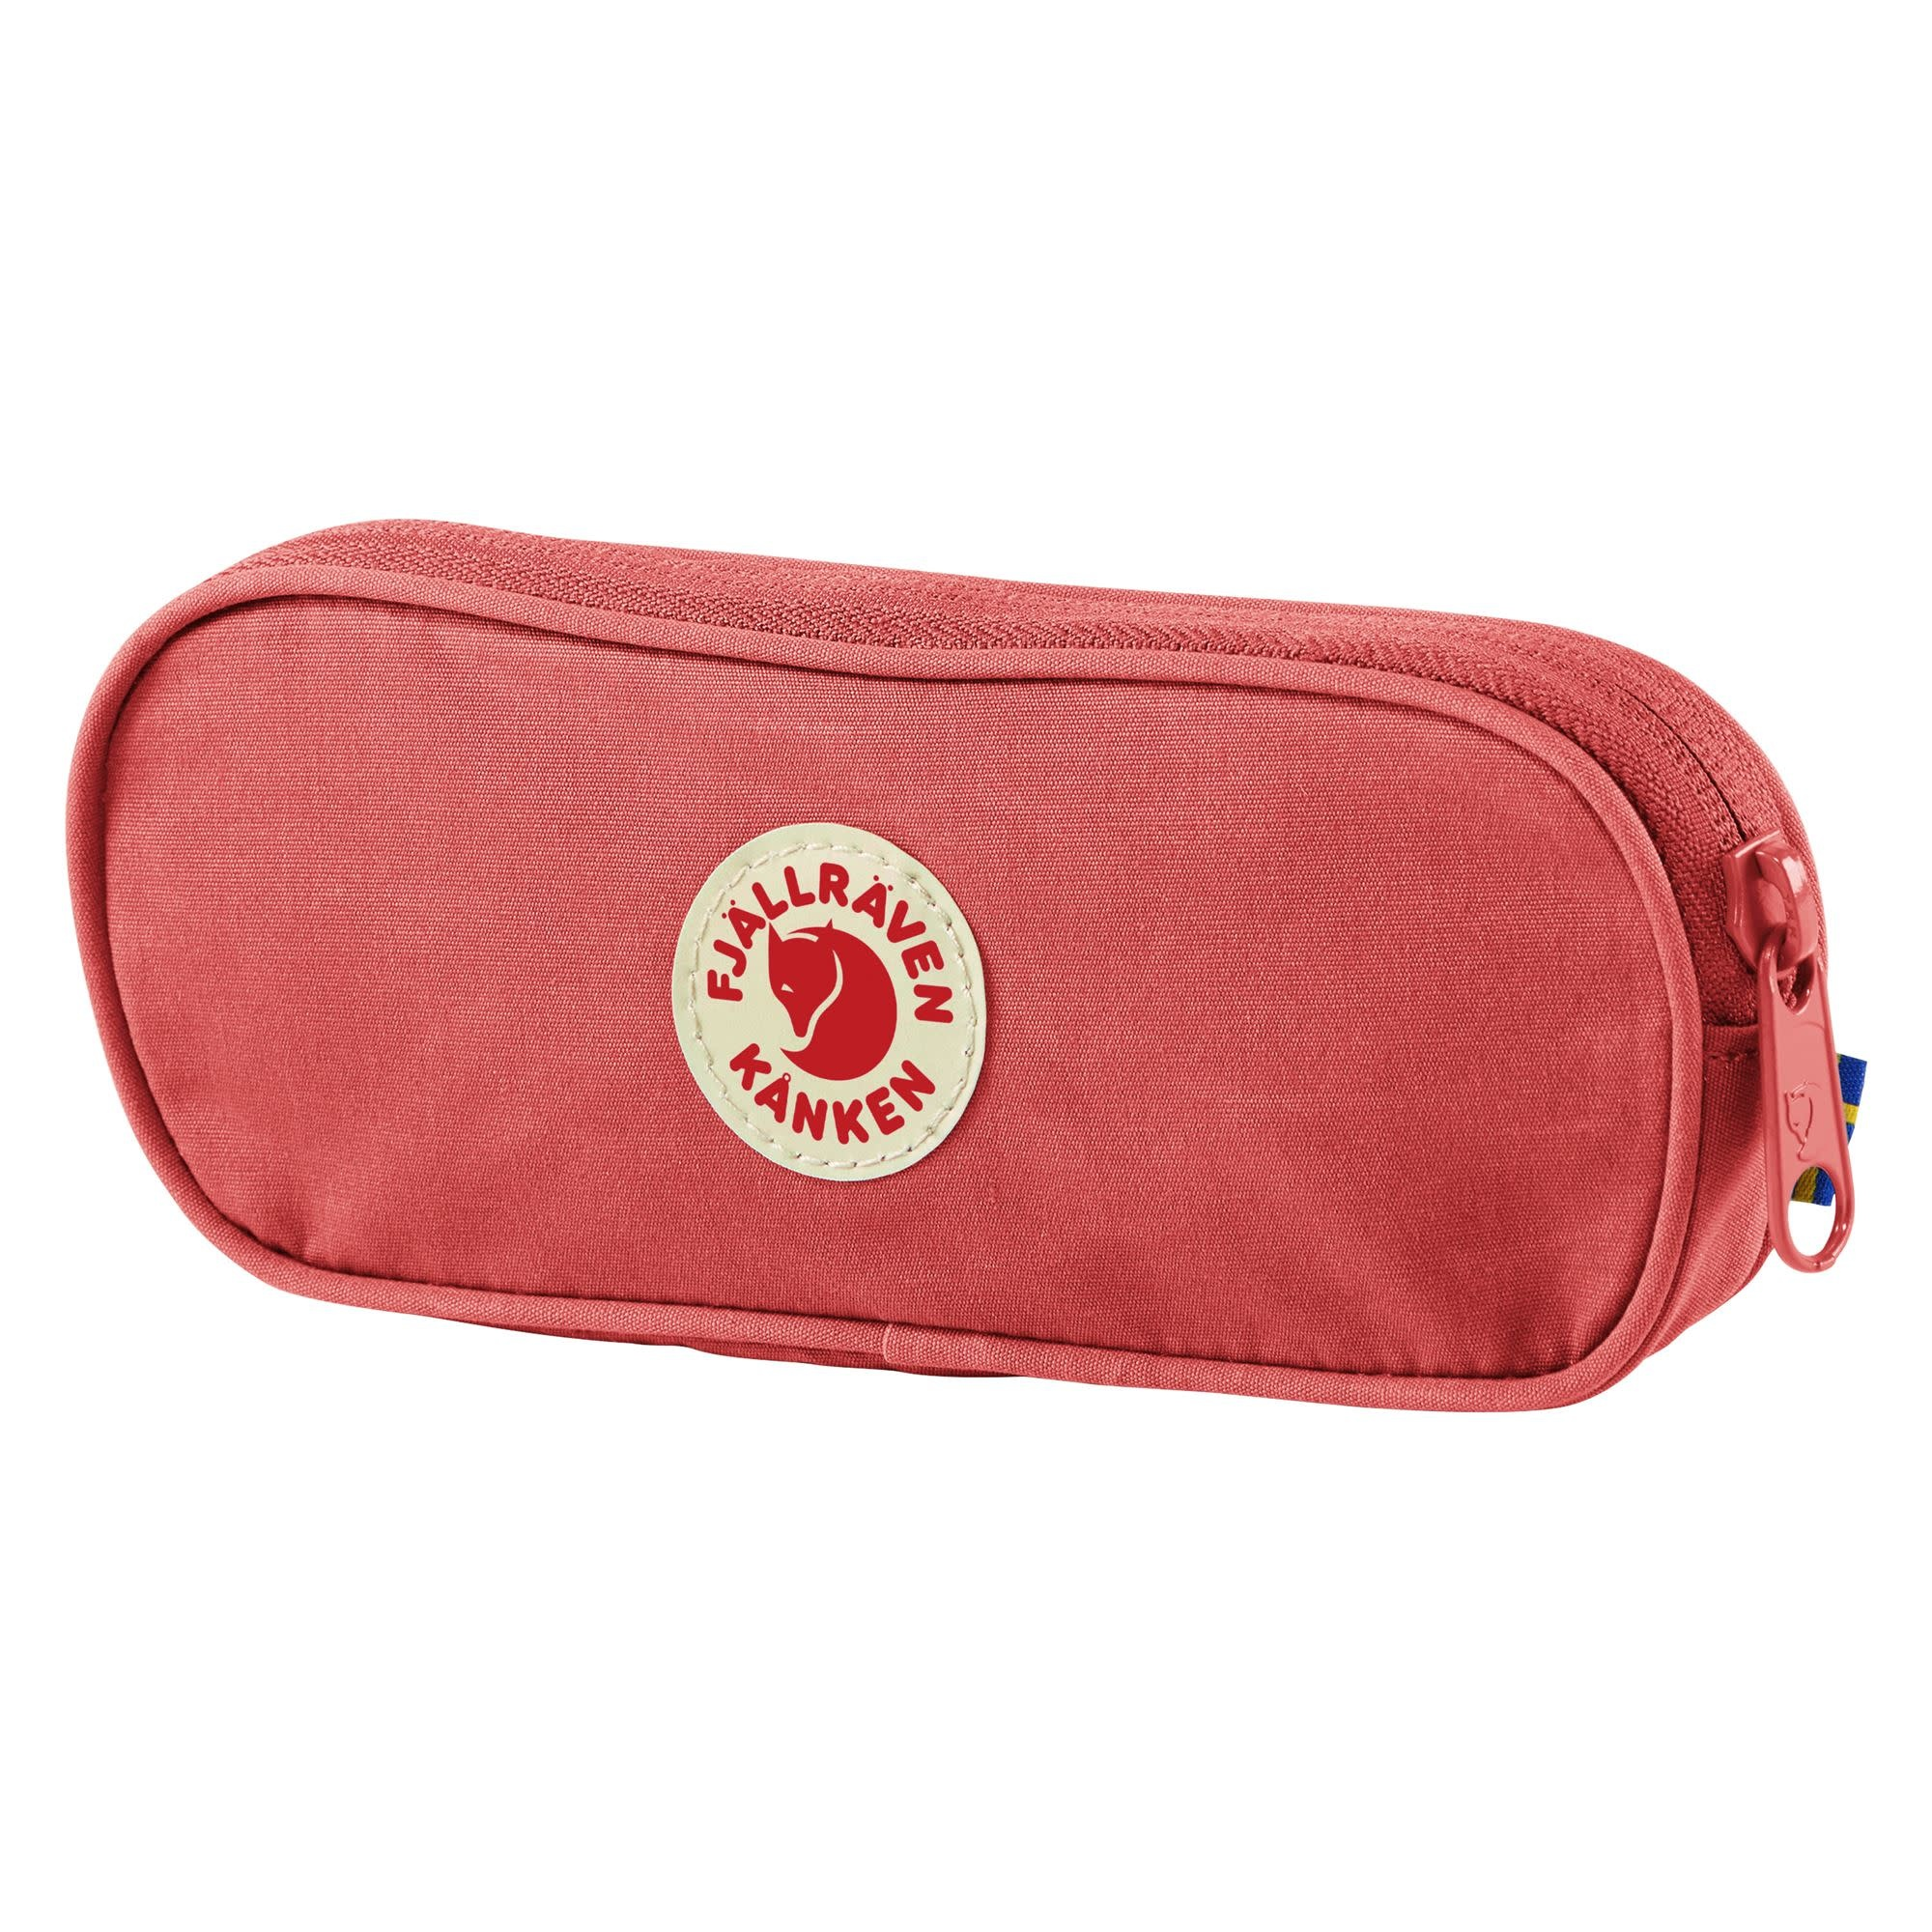 Fjallraven Arctic Fox LLC Fjallraven Kanken Pen Case - Peach Pink